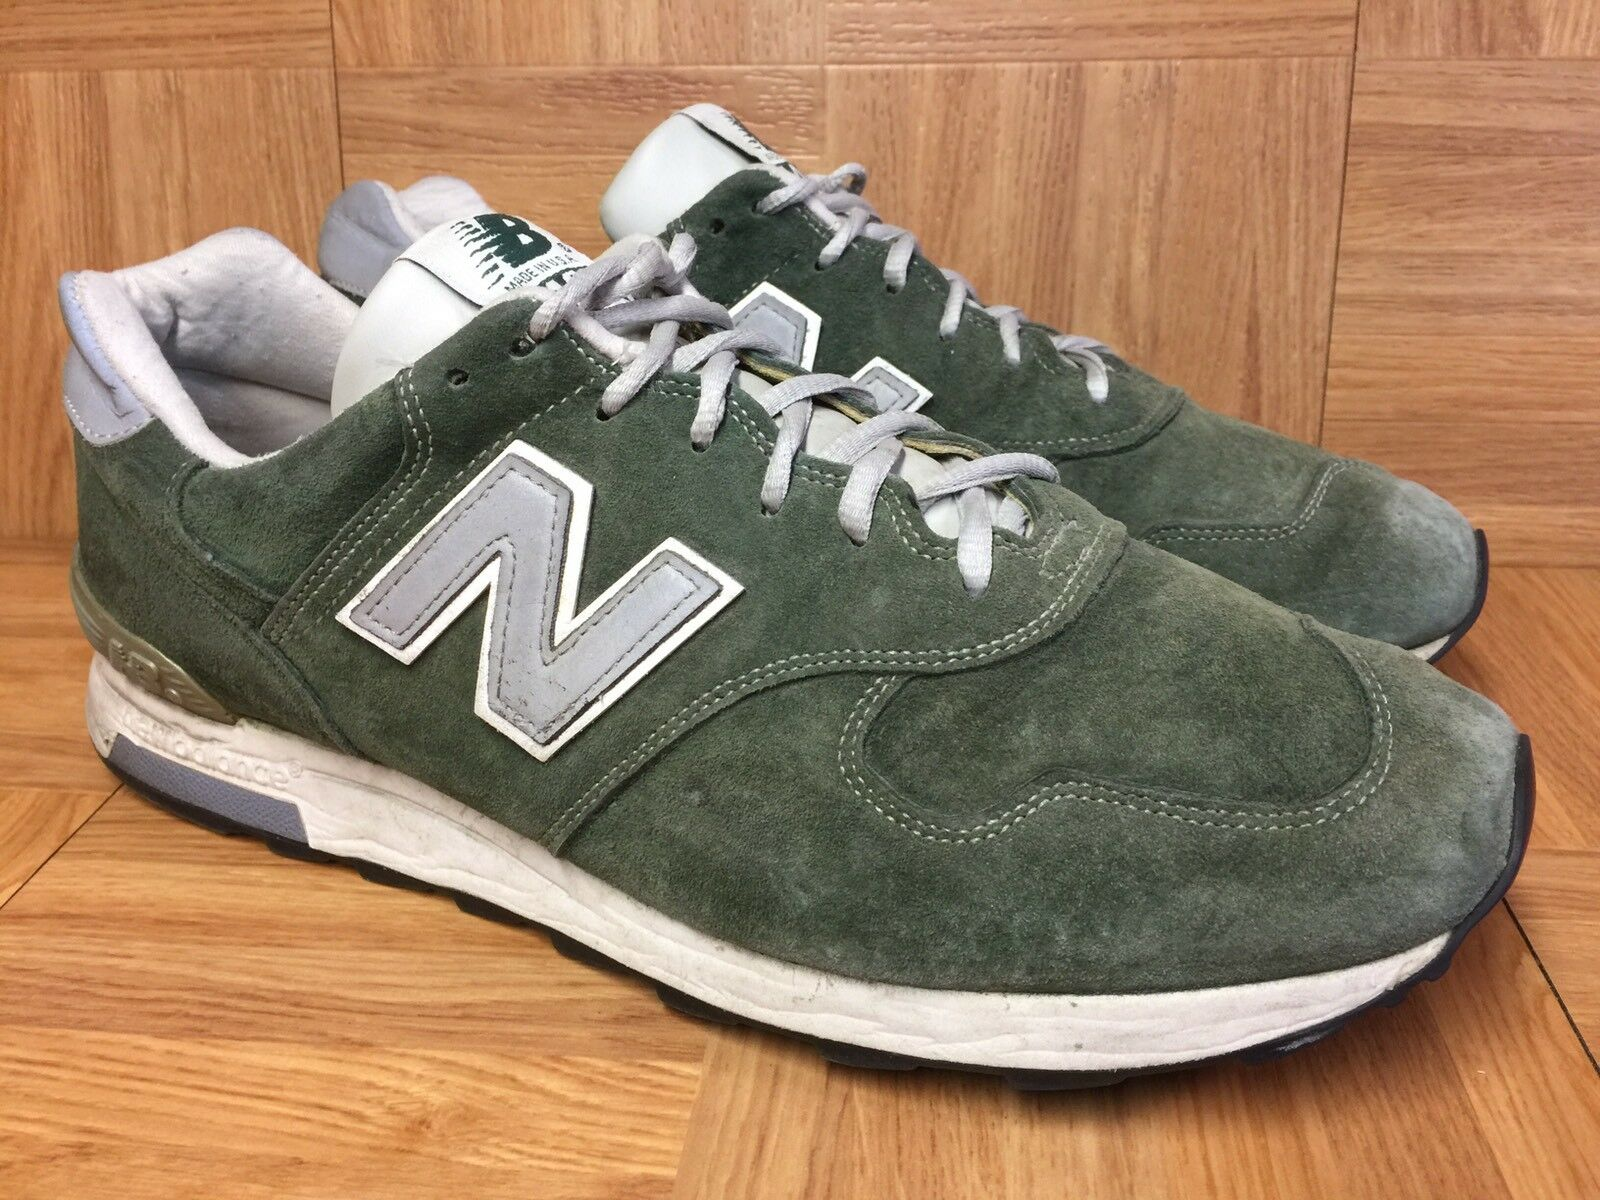 RARE RARE RARE New Balance 1400 Made In USA Sneakers M1400MG Forest Green Sz 12 Mens 73537f